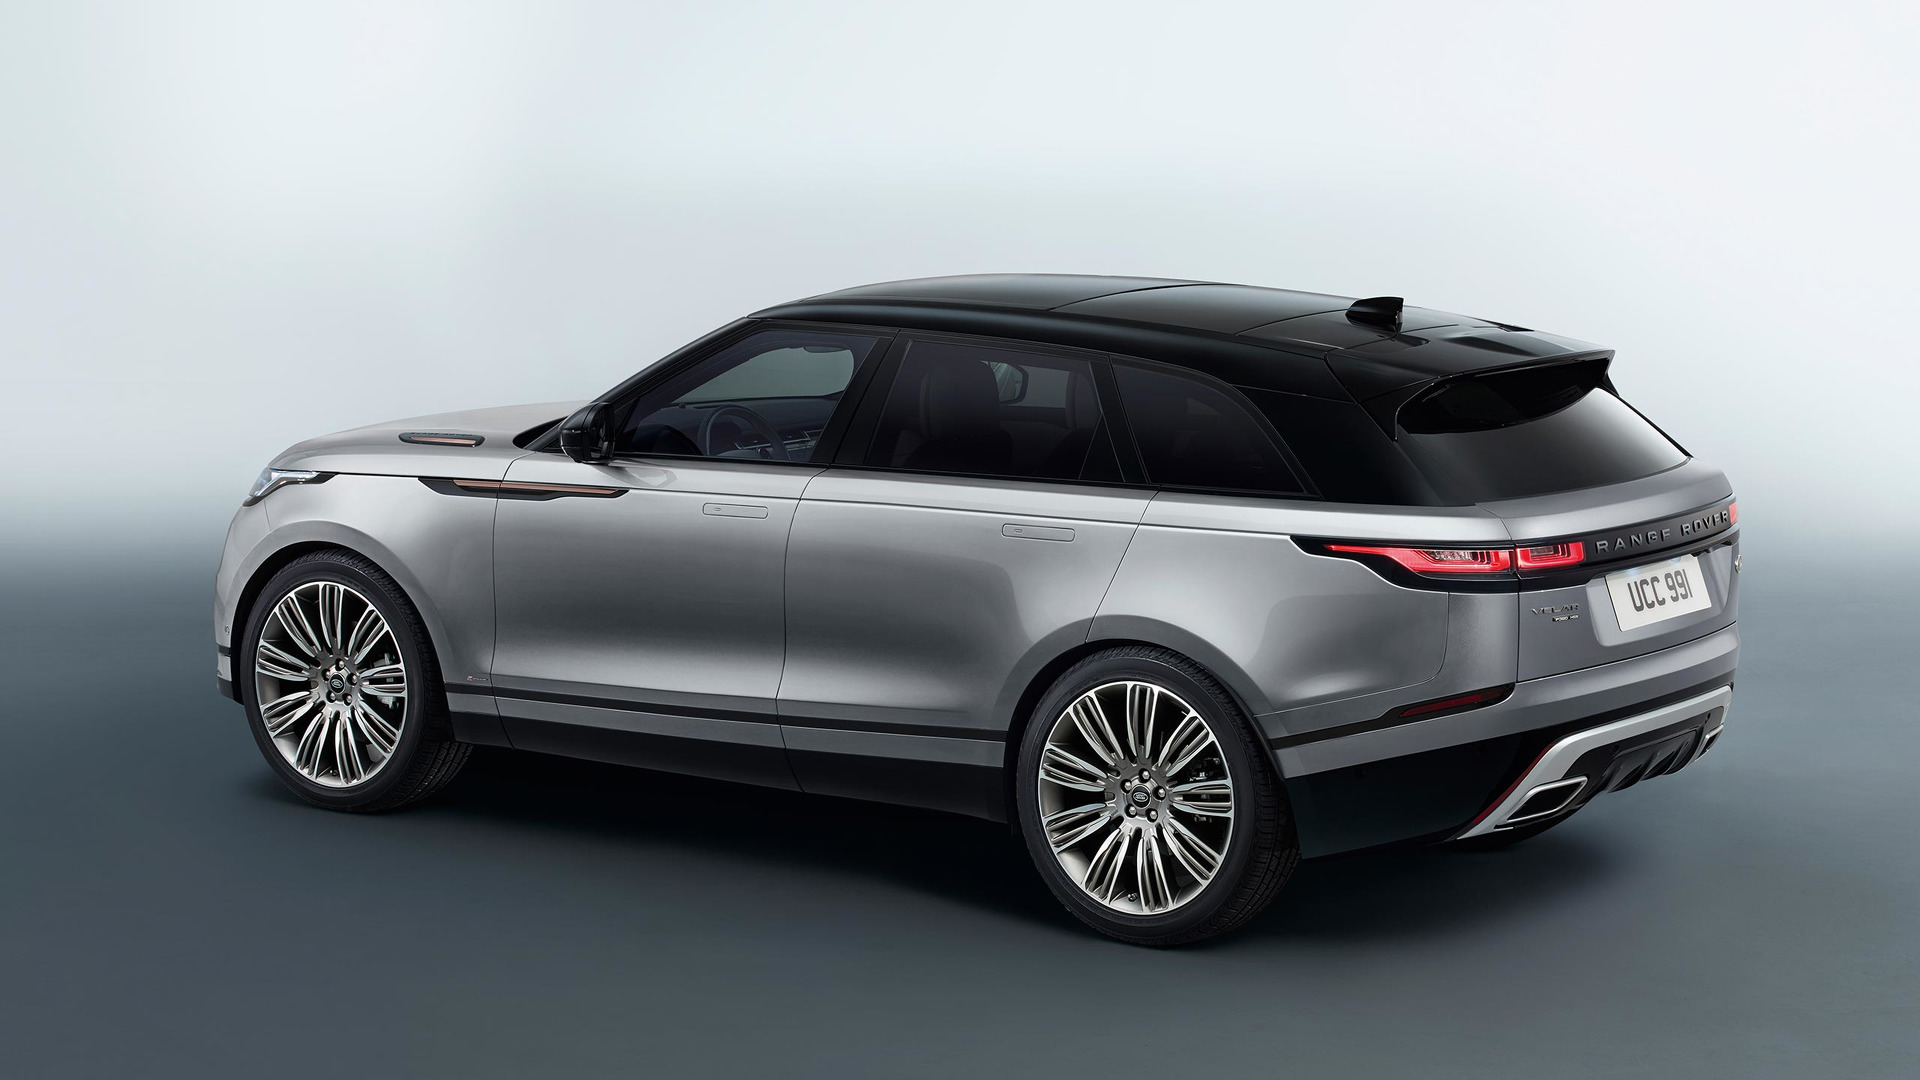 Range Rover Pickup >> The most expensive Land Rover Range Rover Velar costs $103,265